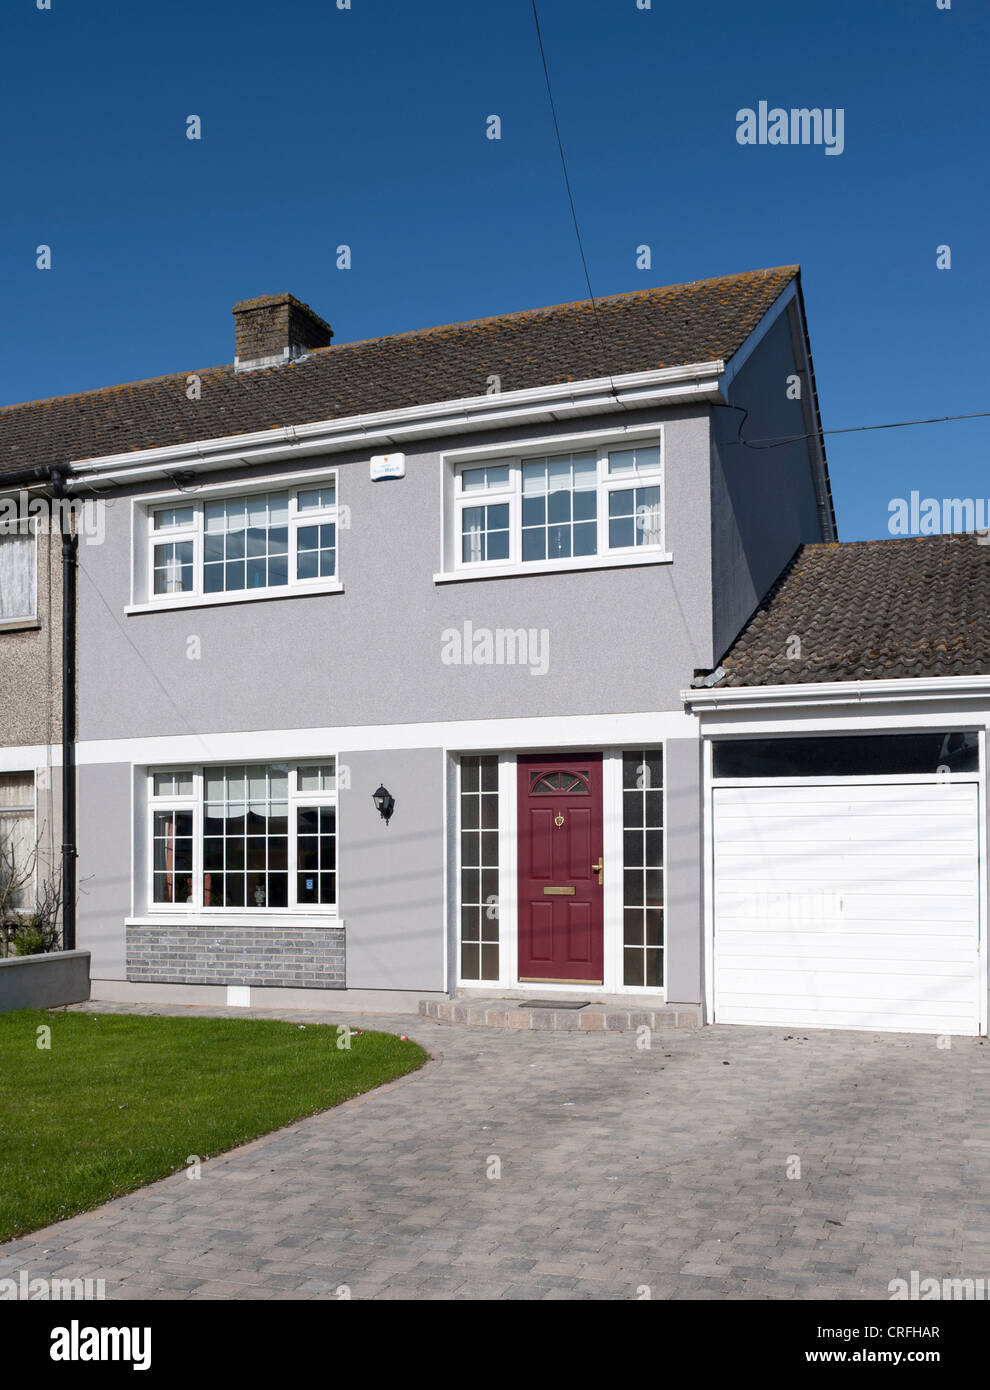 Typical semi-detached house - Stock Image